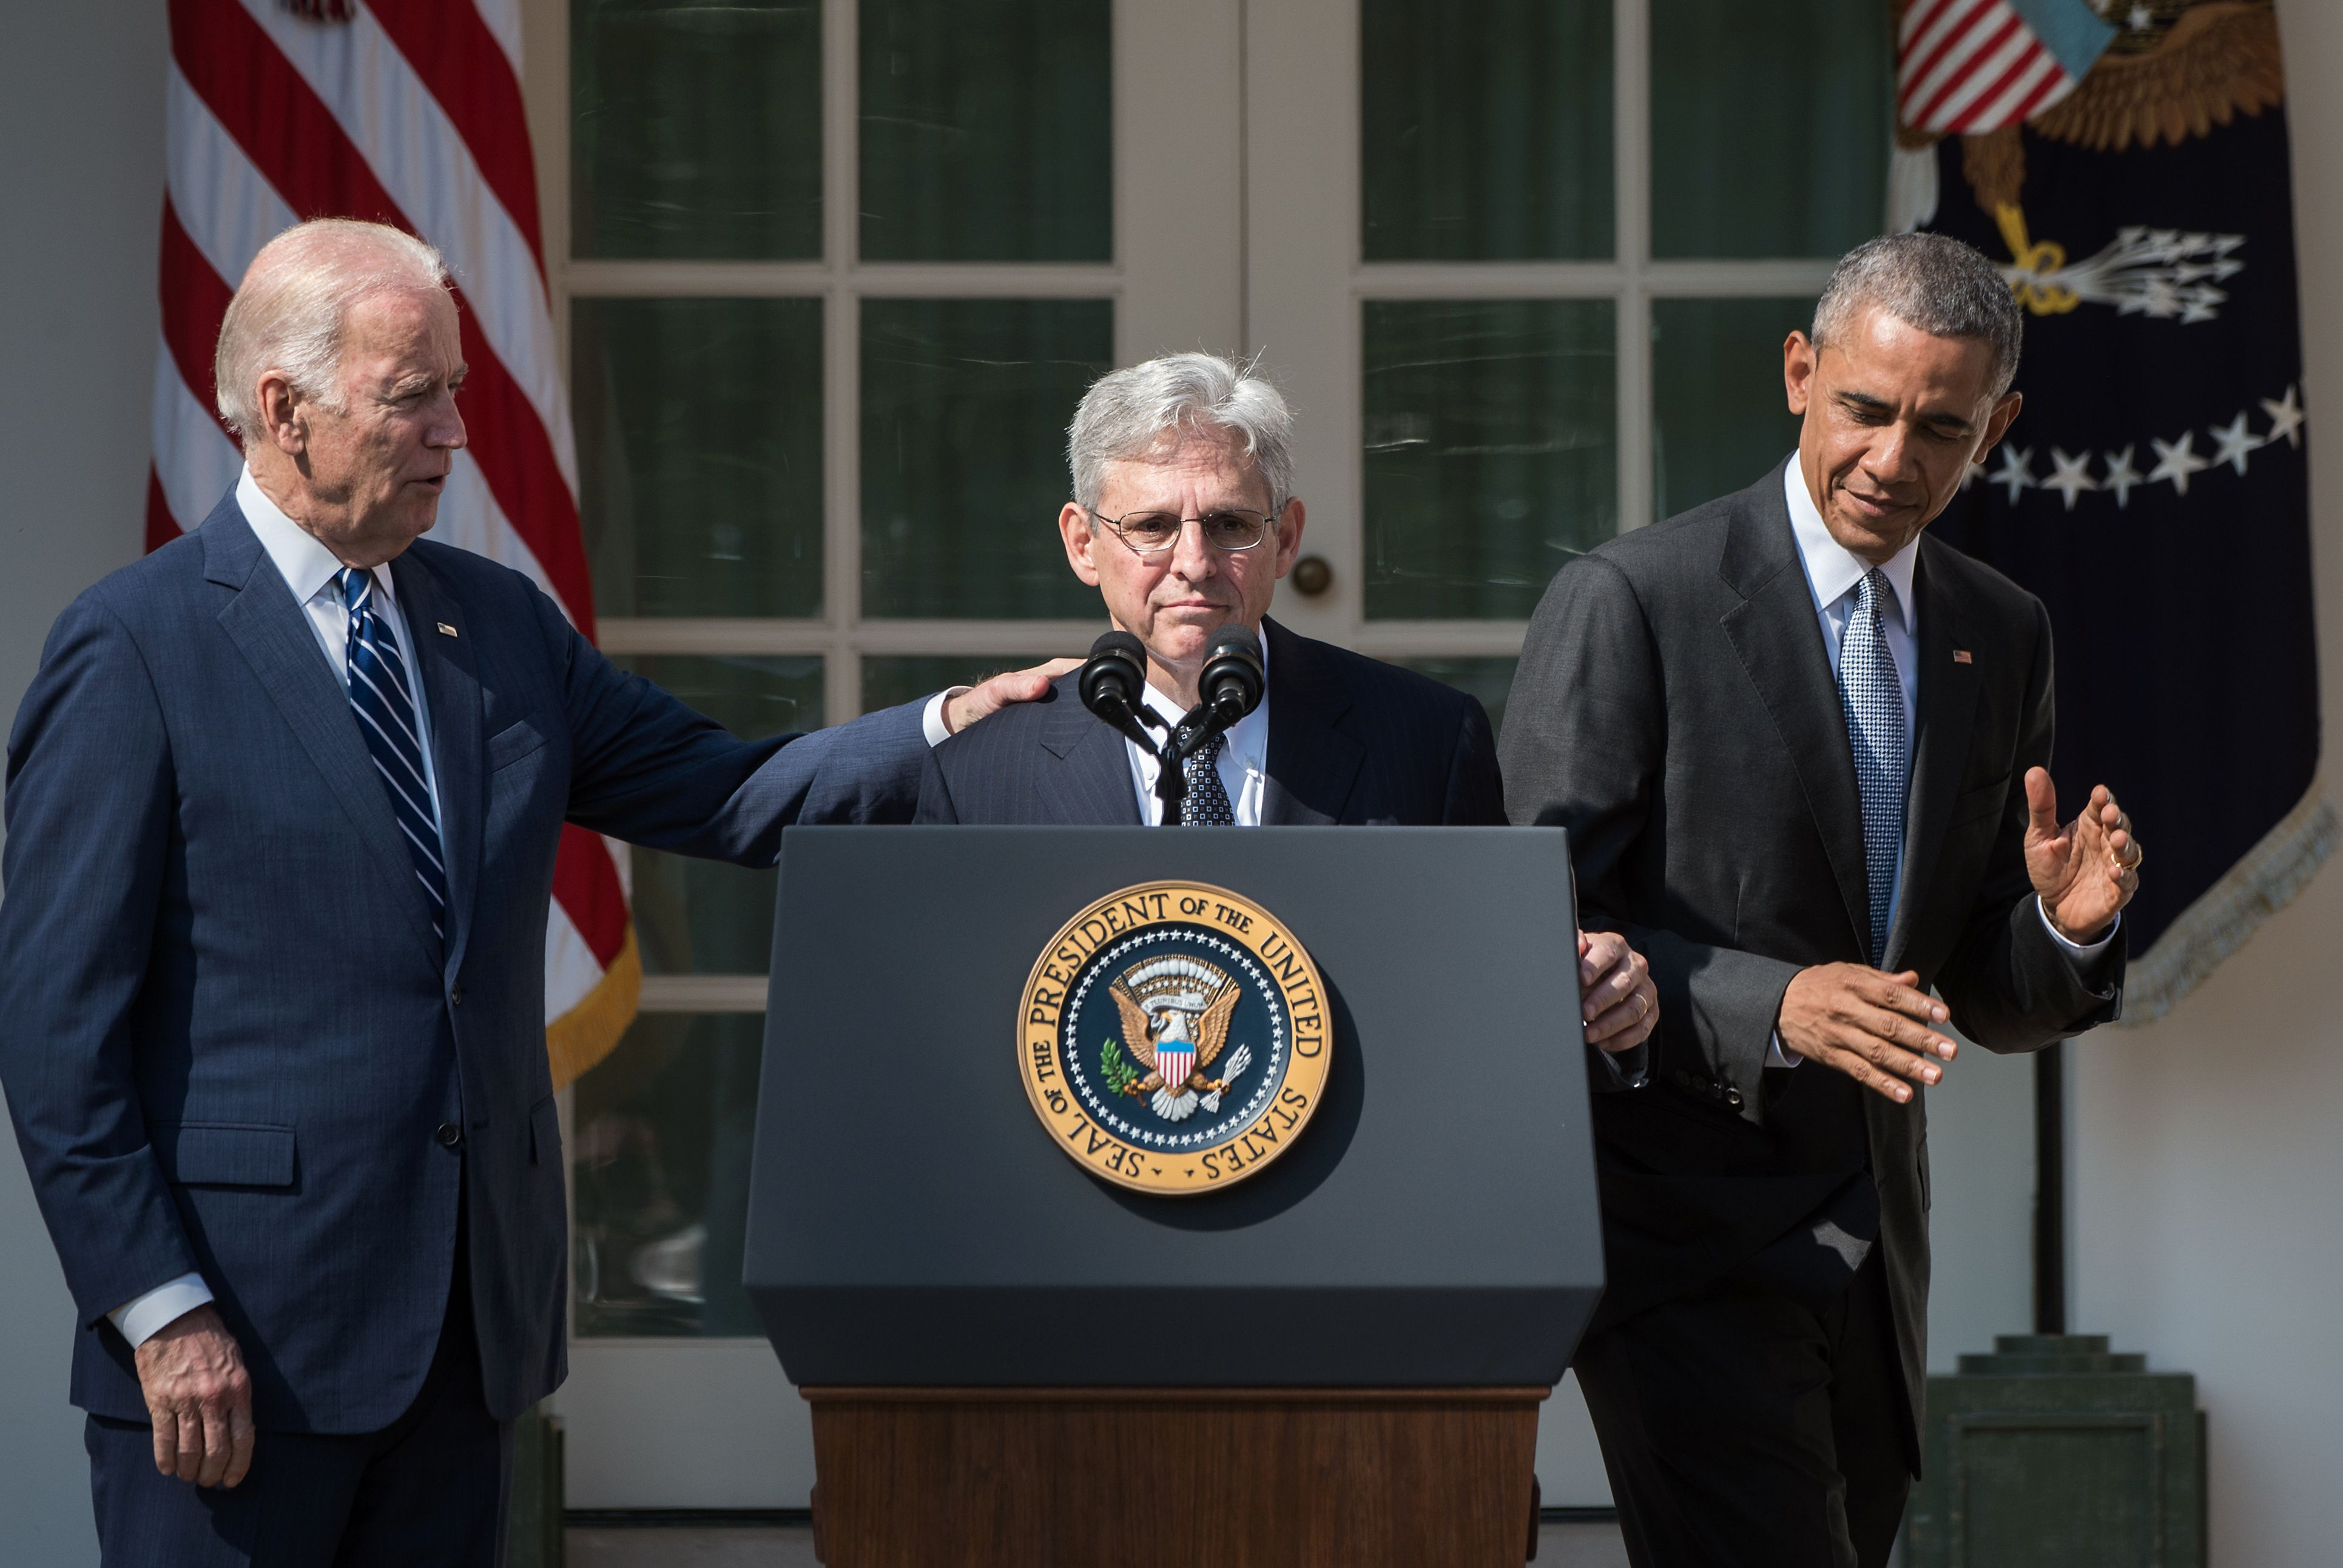 Merrick Garland stands at a lectern. Vice President Joe Biden stands with his hand on Garland's shoulder. President Barack Obama stands on Garland's other side.